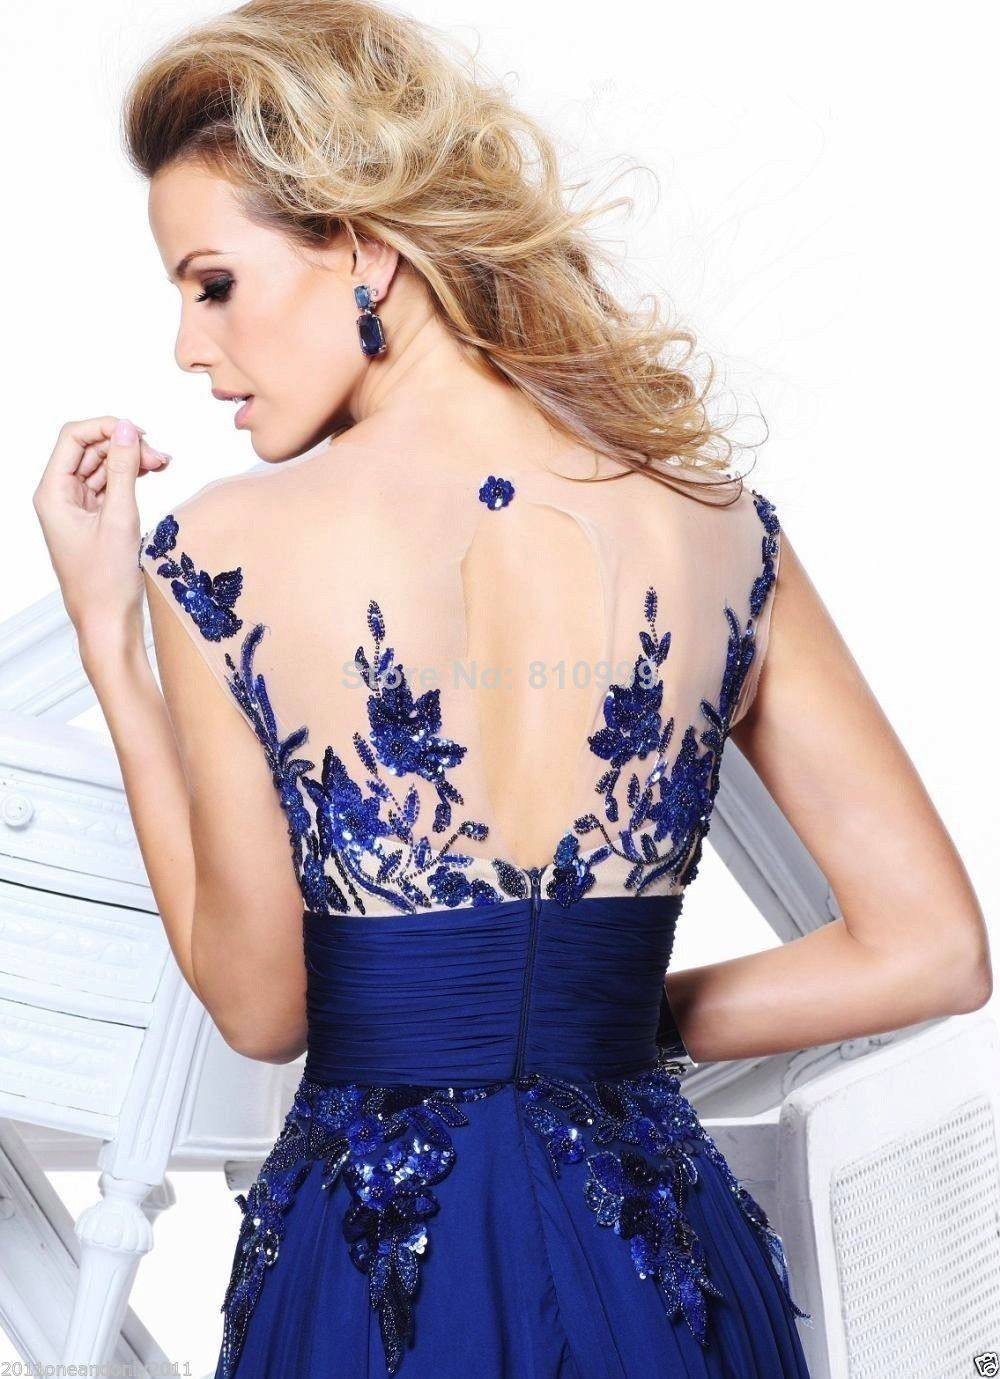 Aliexpress.com : Buy free shipping royal blue spaghetti strap beading side slit chiffon sexy prom gowns long evening dress new fashion 2014 from Reliable gown backless suppliers on Suzhou Jaeden Garment Co., Ltd.